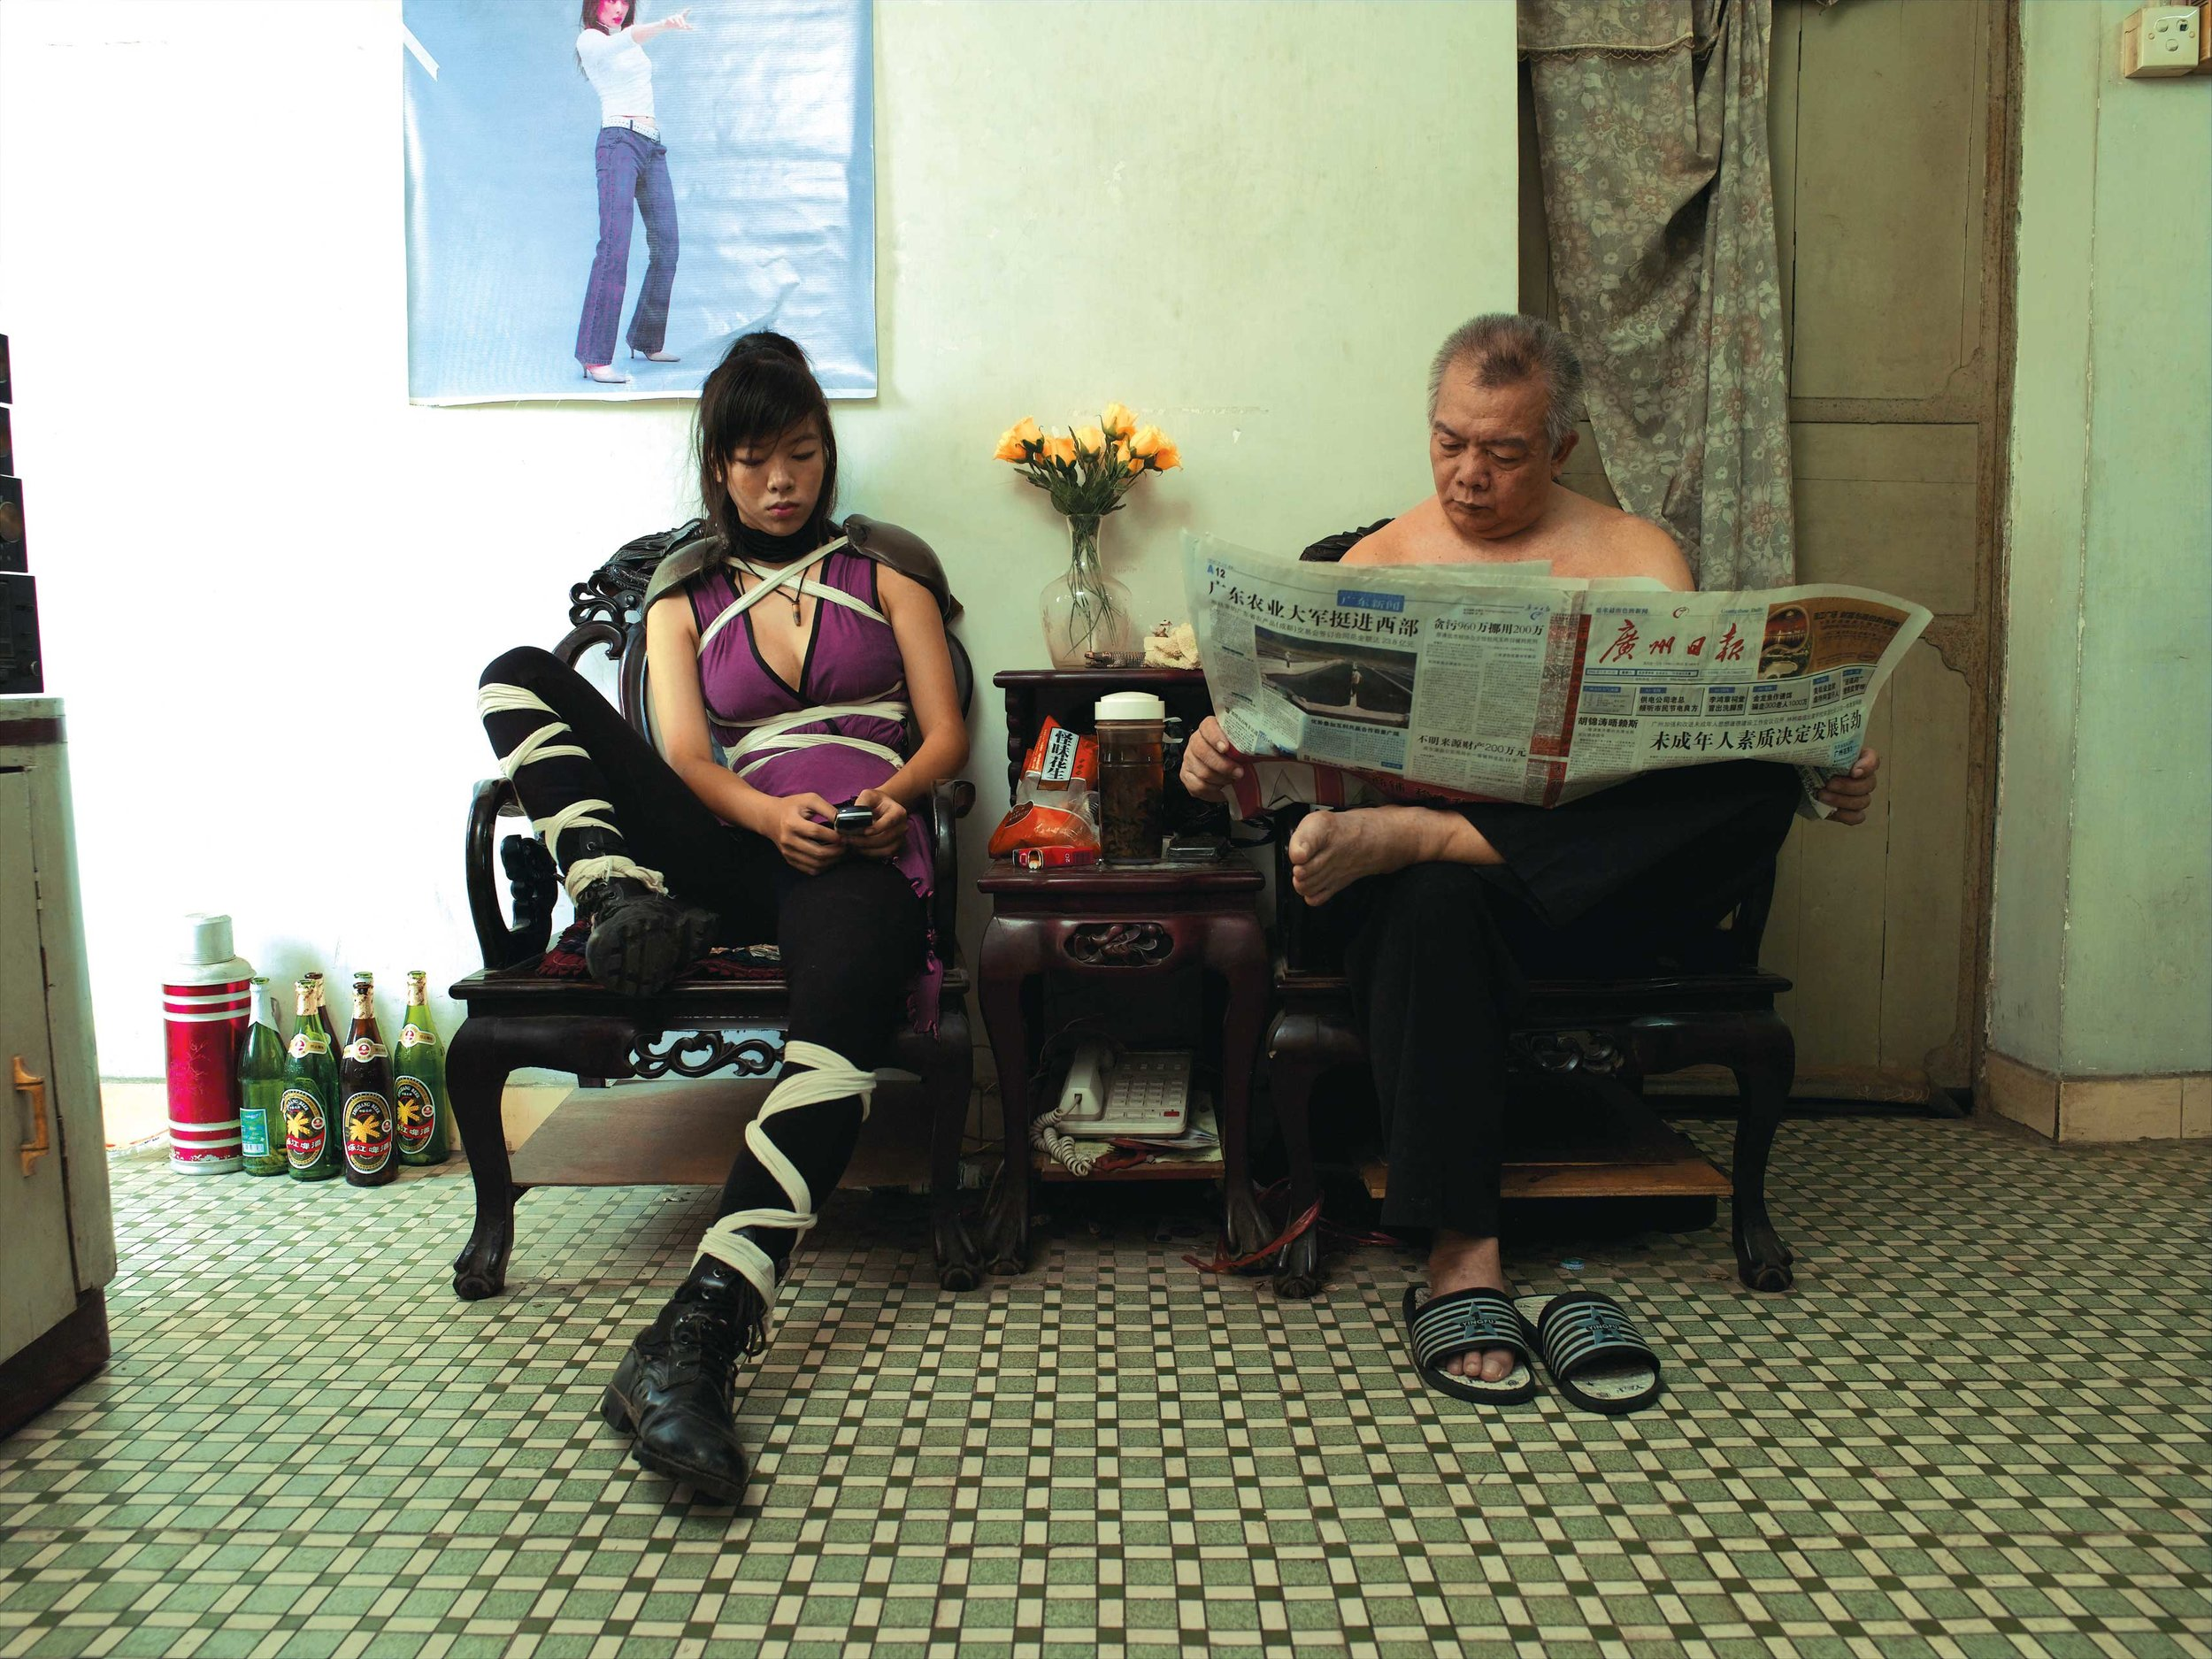 A Ming at Home  (From Cosplayers Series), 2004. Inkjet print, 75 x 100 cm